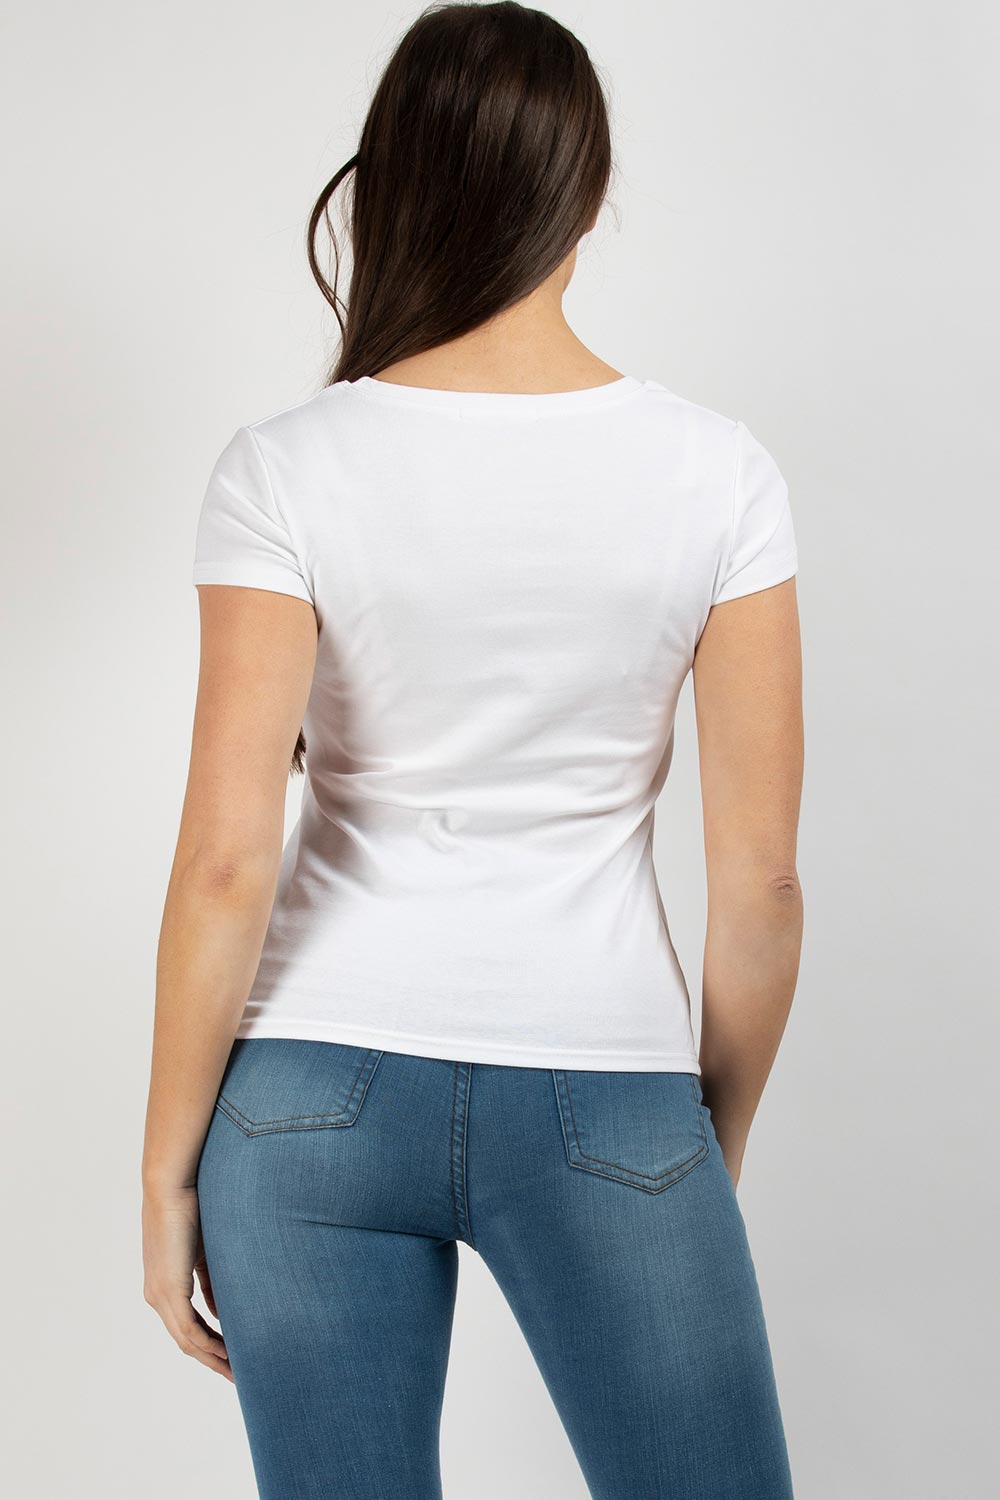 white balmain inspired t shirt womens